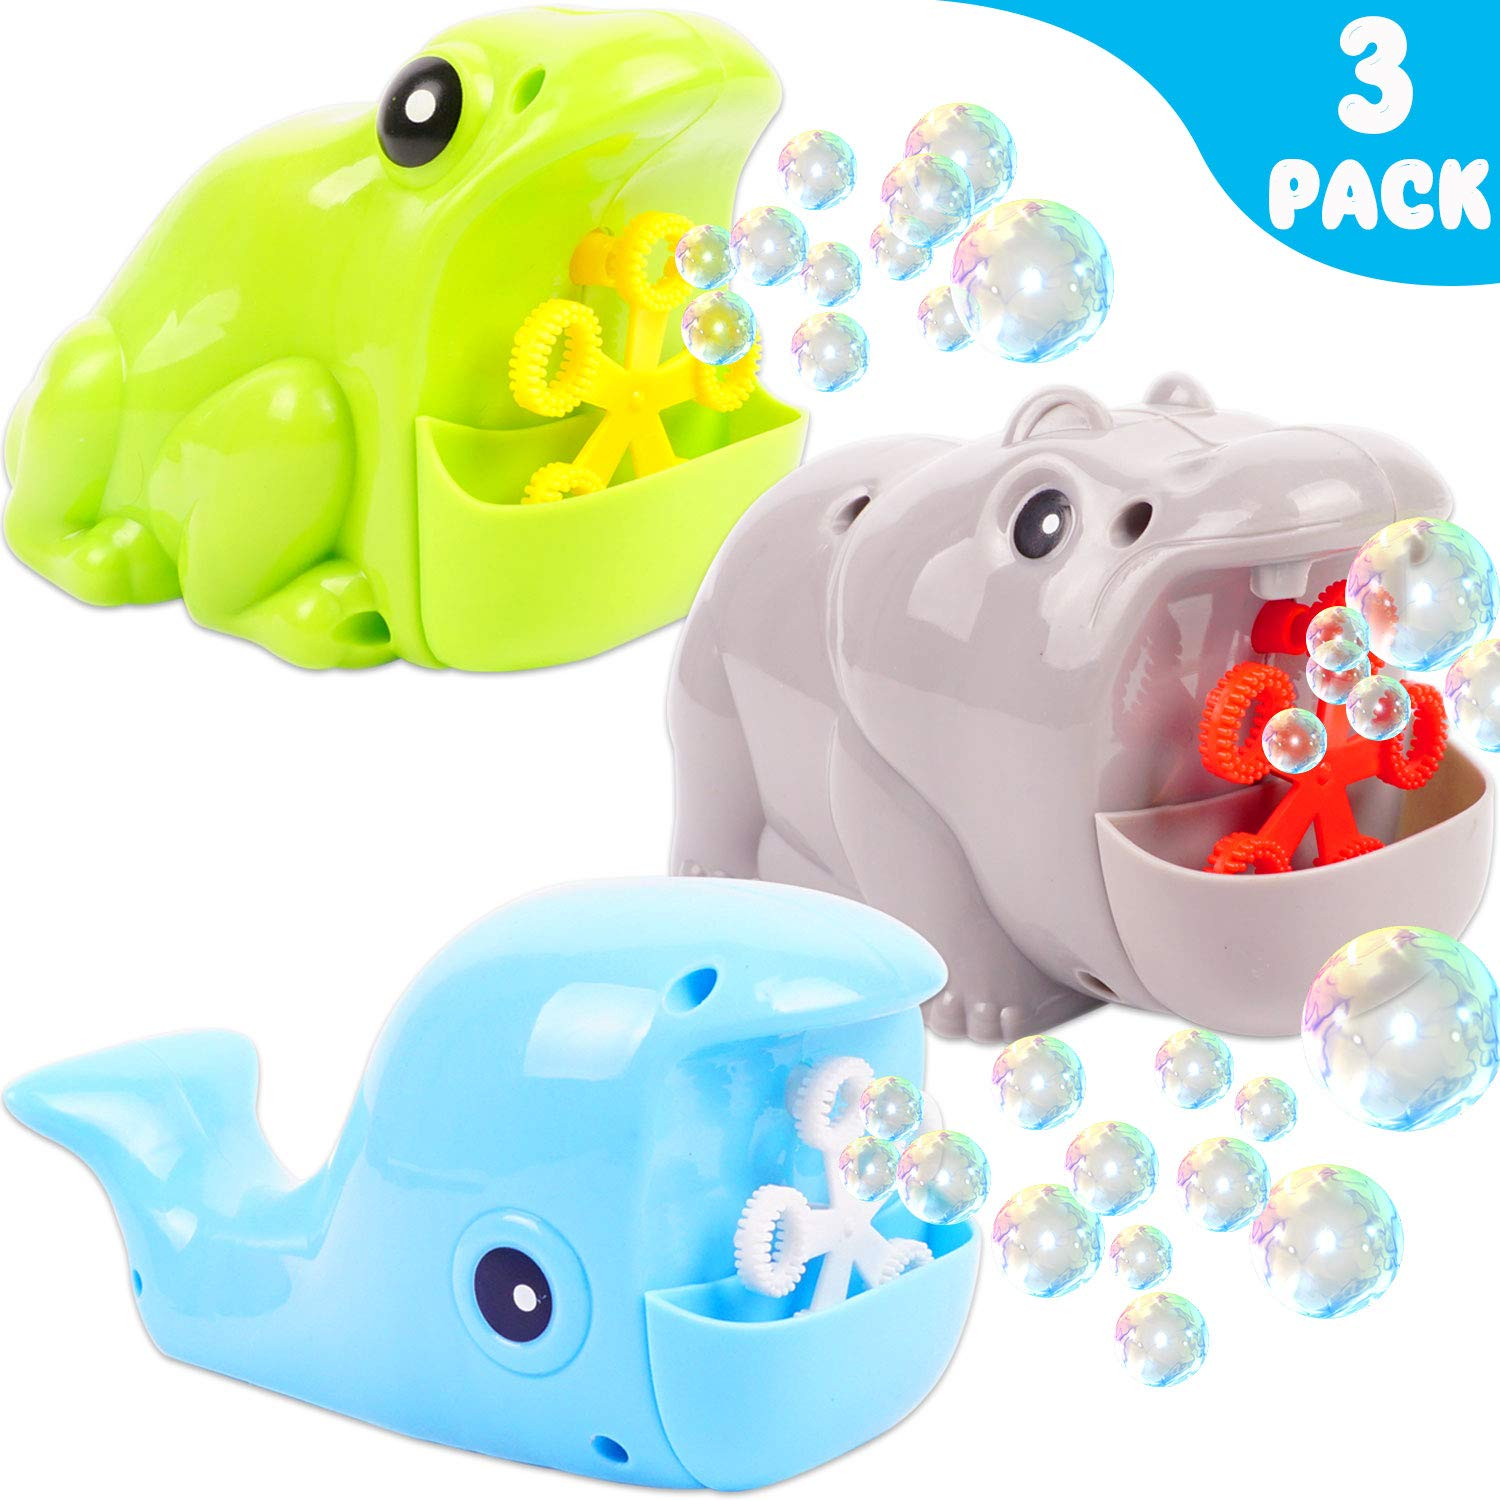 Mindscrio Bubble Machine, 3 Pack Automatic Durable Bubble Blower for Kids, 2500 Bubbles per Minute, Easy to use Children's Toys for Indoor and Outdoor, Best Bubble Toys Bath Toys Gift Idea